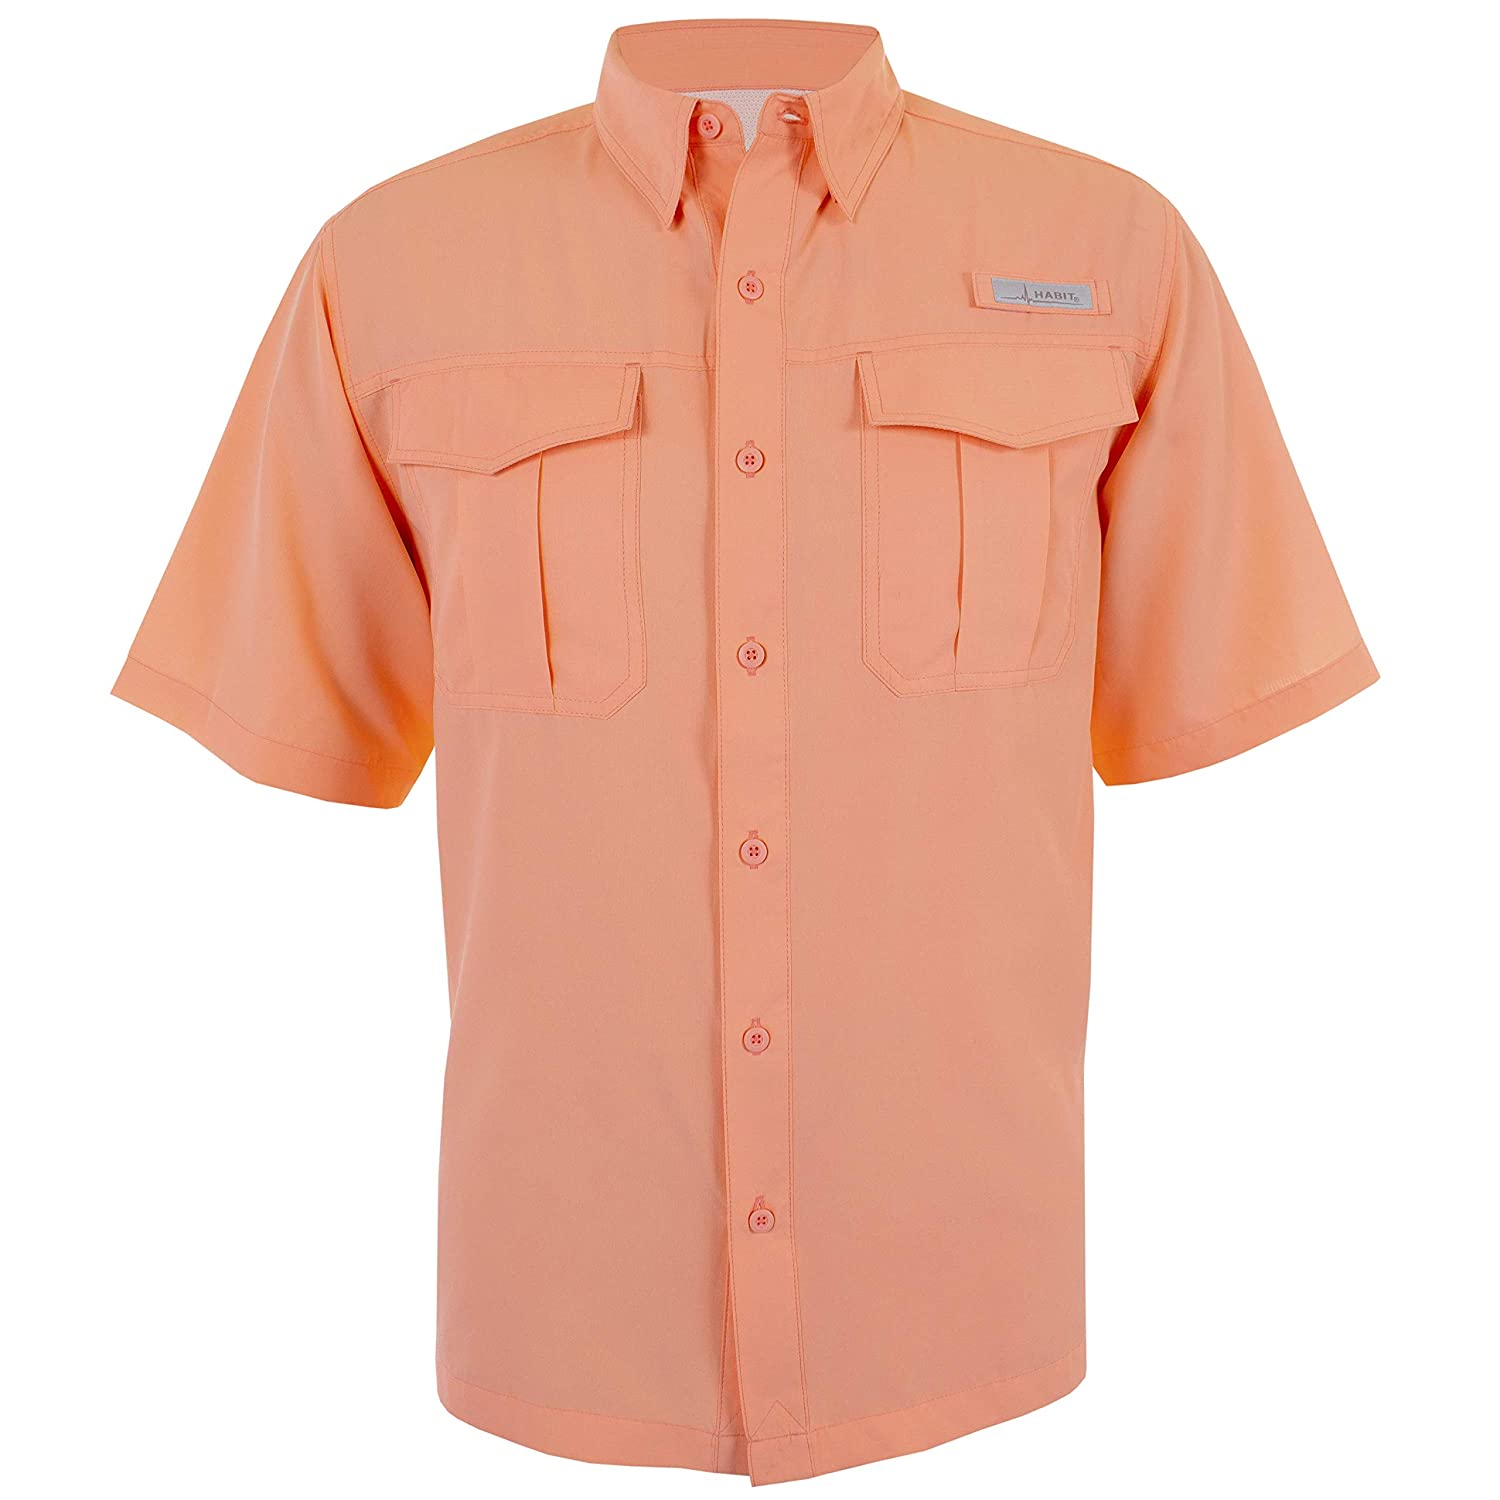 HABIT Mens Belcoast Short Sleeve River Guide Fishing Outdoor Recreation Casual Button-Down Shirts